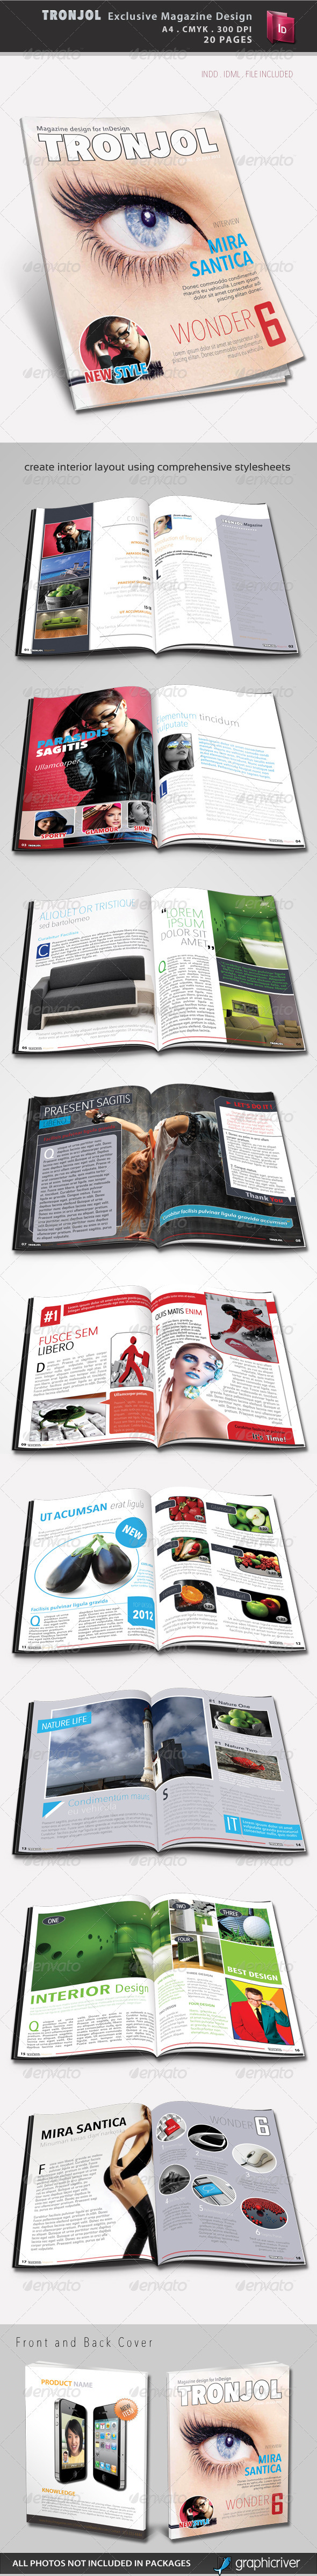 Tronjol Exclusive Magazine Design - Magazines Print Templates